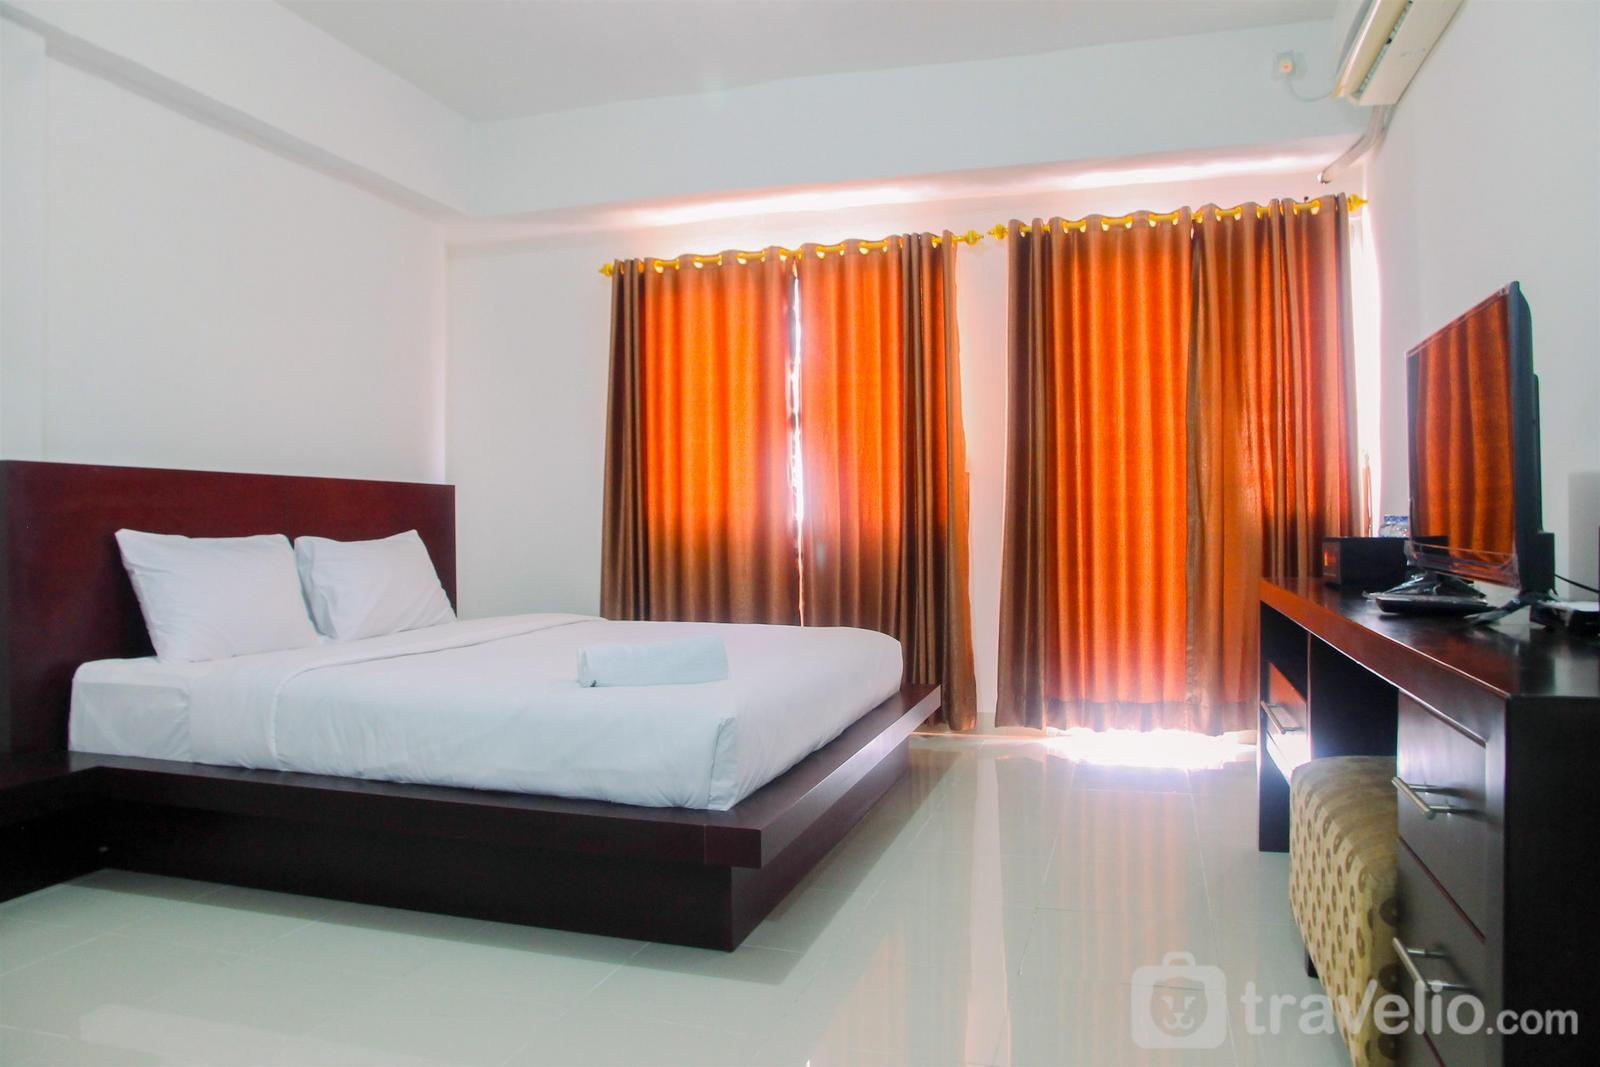 Park View Condominium - Affordable Price with City View Studio Room Park View Condominium Apartment By Travelio